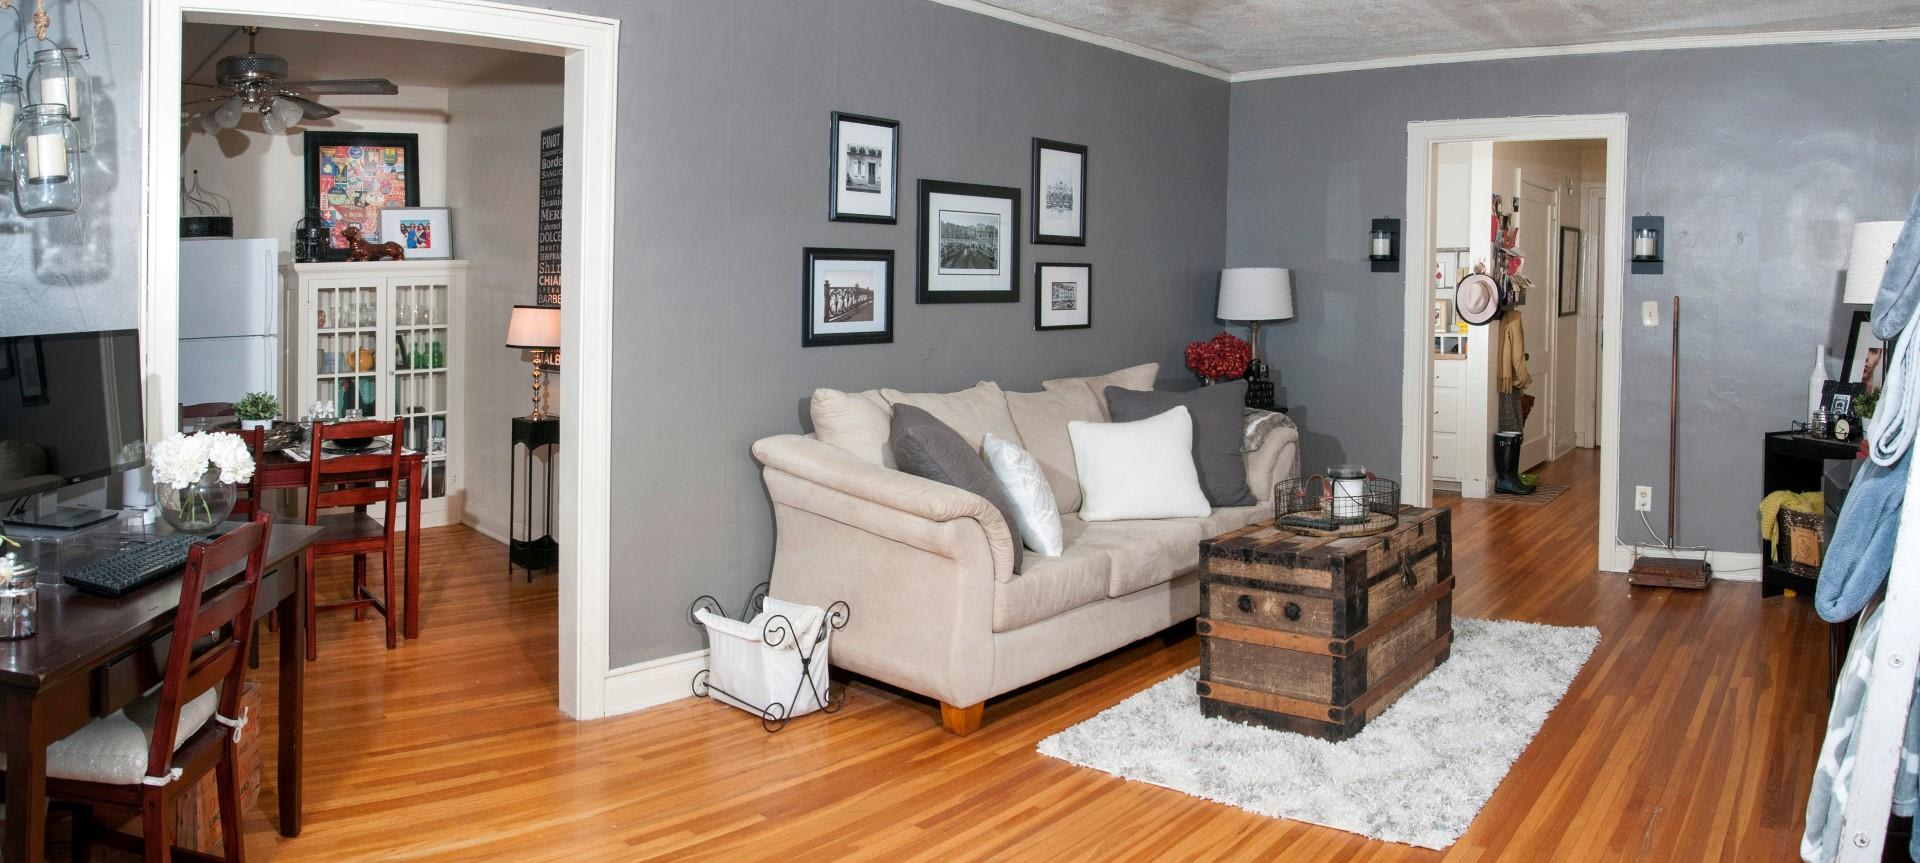 Open Livingroom with Grey Walls and White Trim at 3500 Dupont Apartments